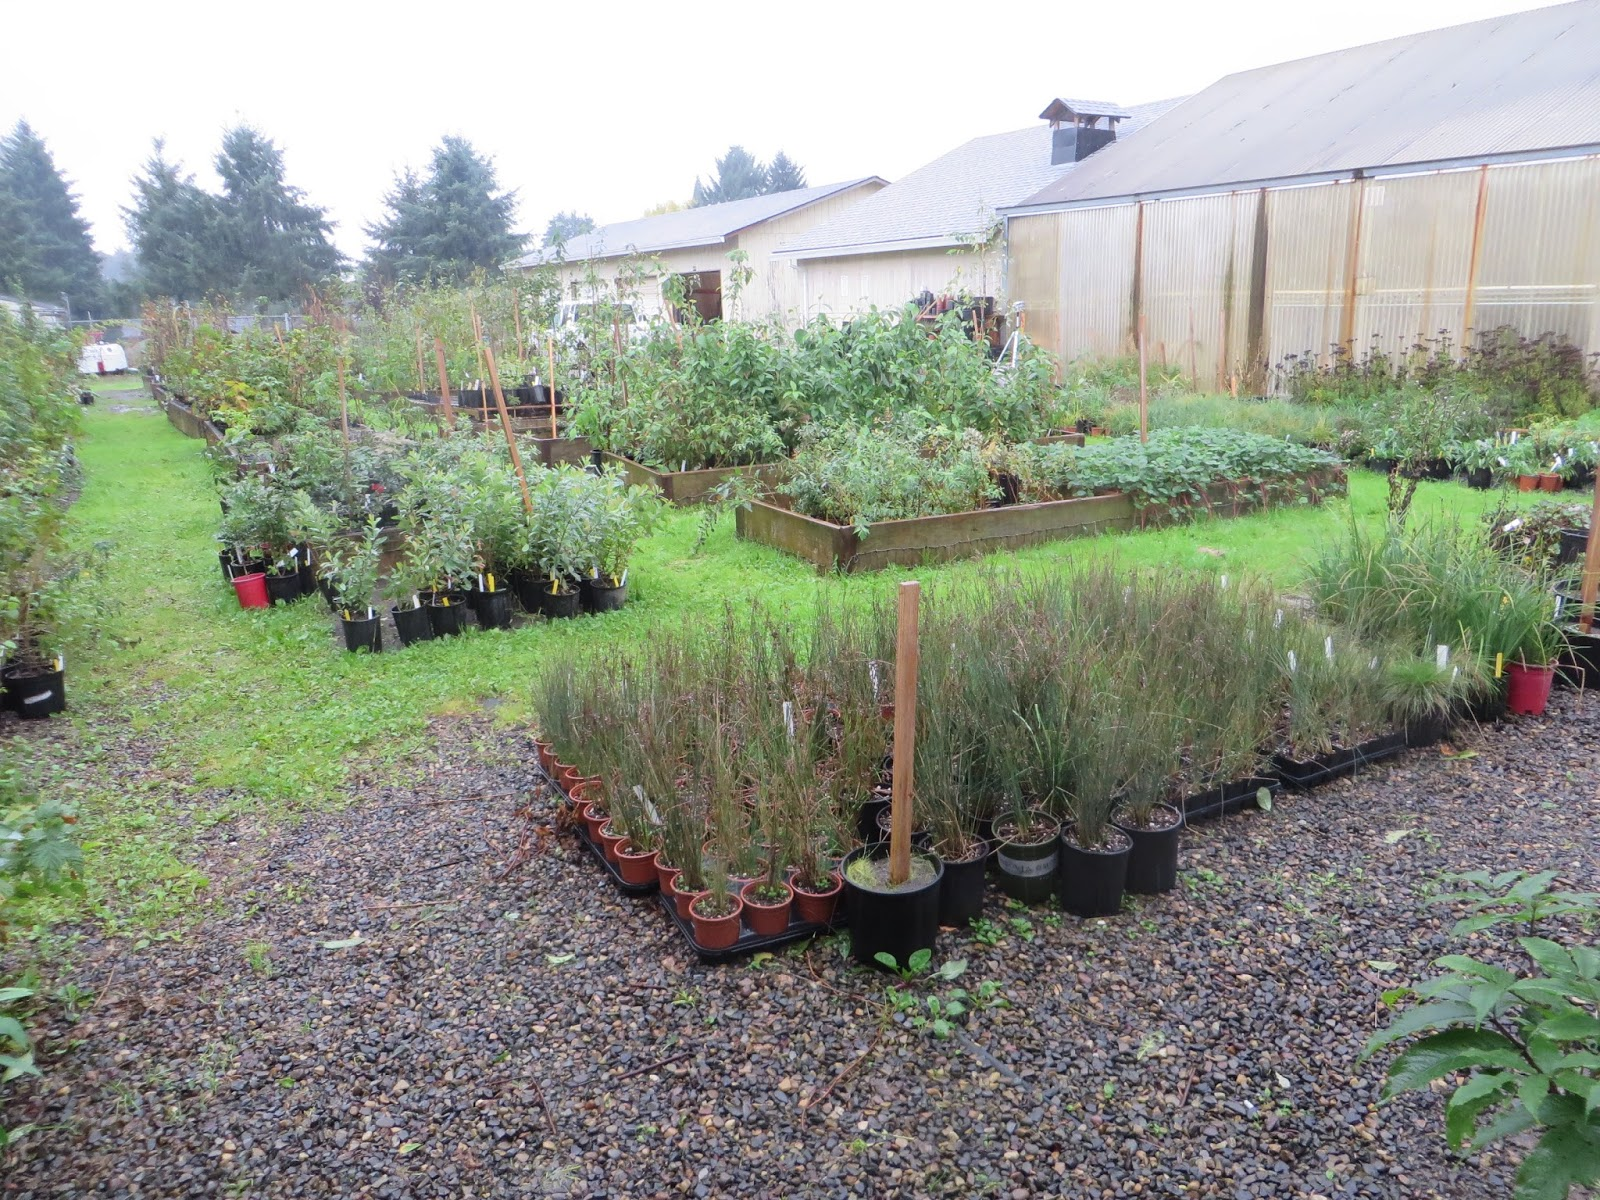 The Nursery All Volunteer By Way Raises A Variety Of Native Plants For Both Sun And Shade Funds From Plant S Help To Keep Greenhouse Going